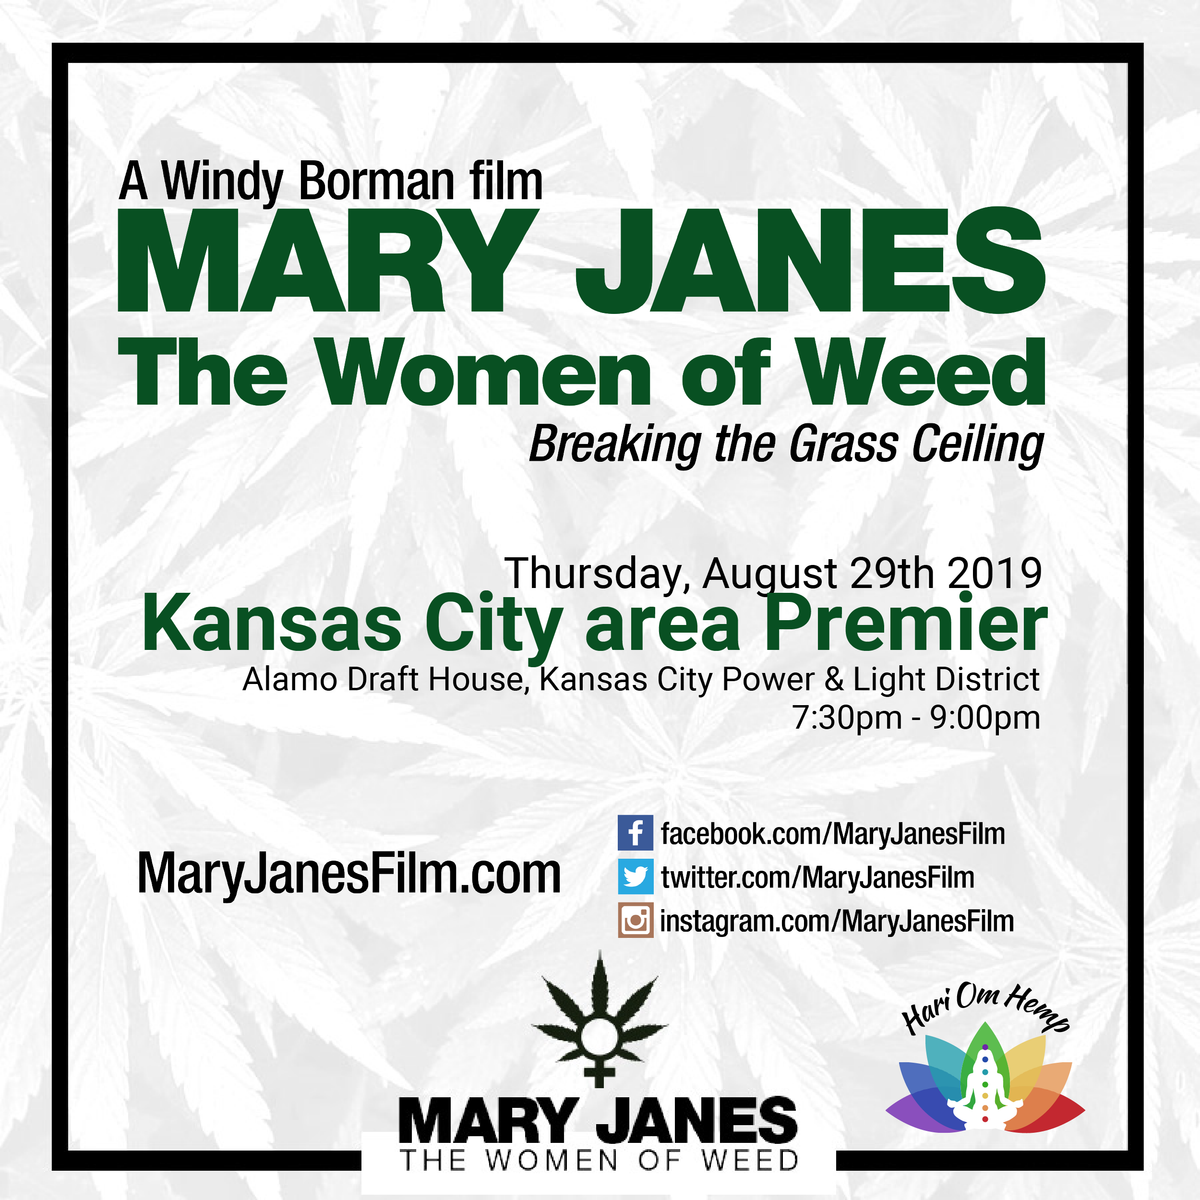 Kansas City Area Premier - MARY JANES - The Women of Weed film